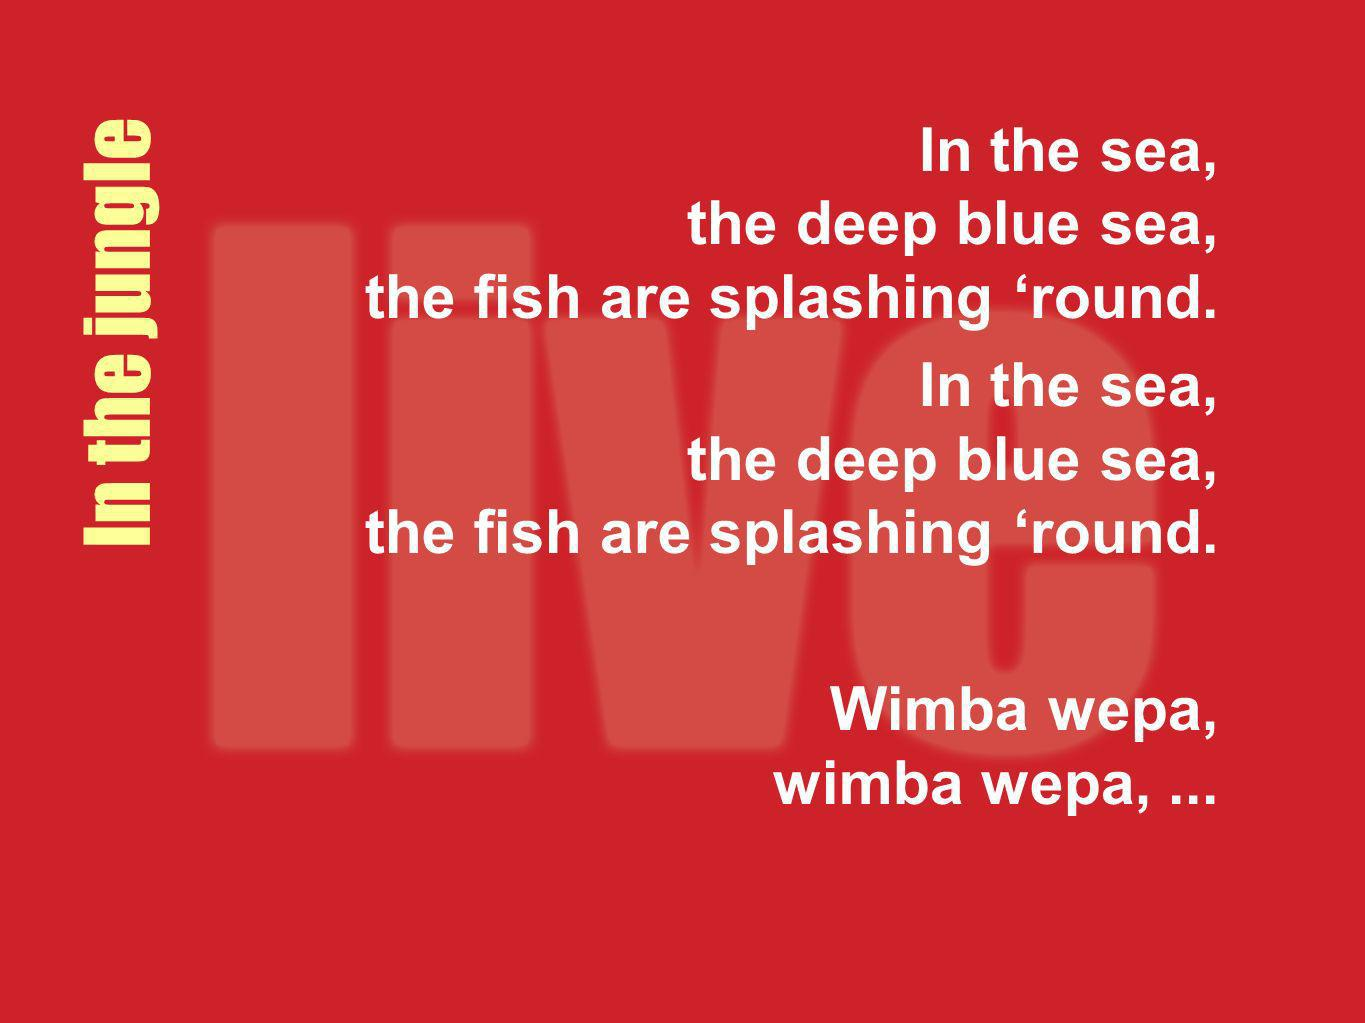 In the sea, the deep blue sea, the fish are splashing round. Wimba wepa, wimba wepa,... In the jungle